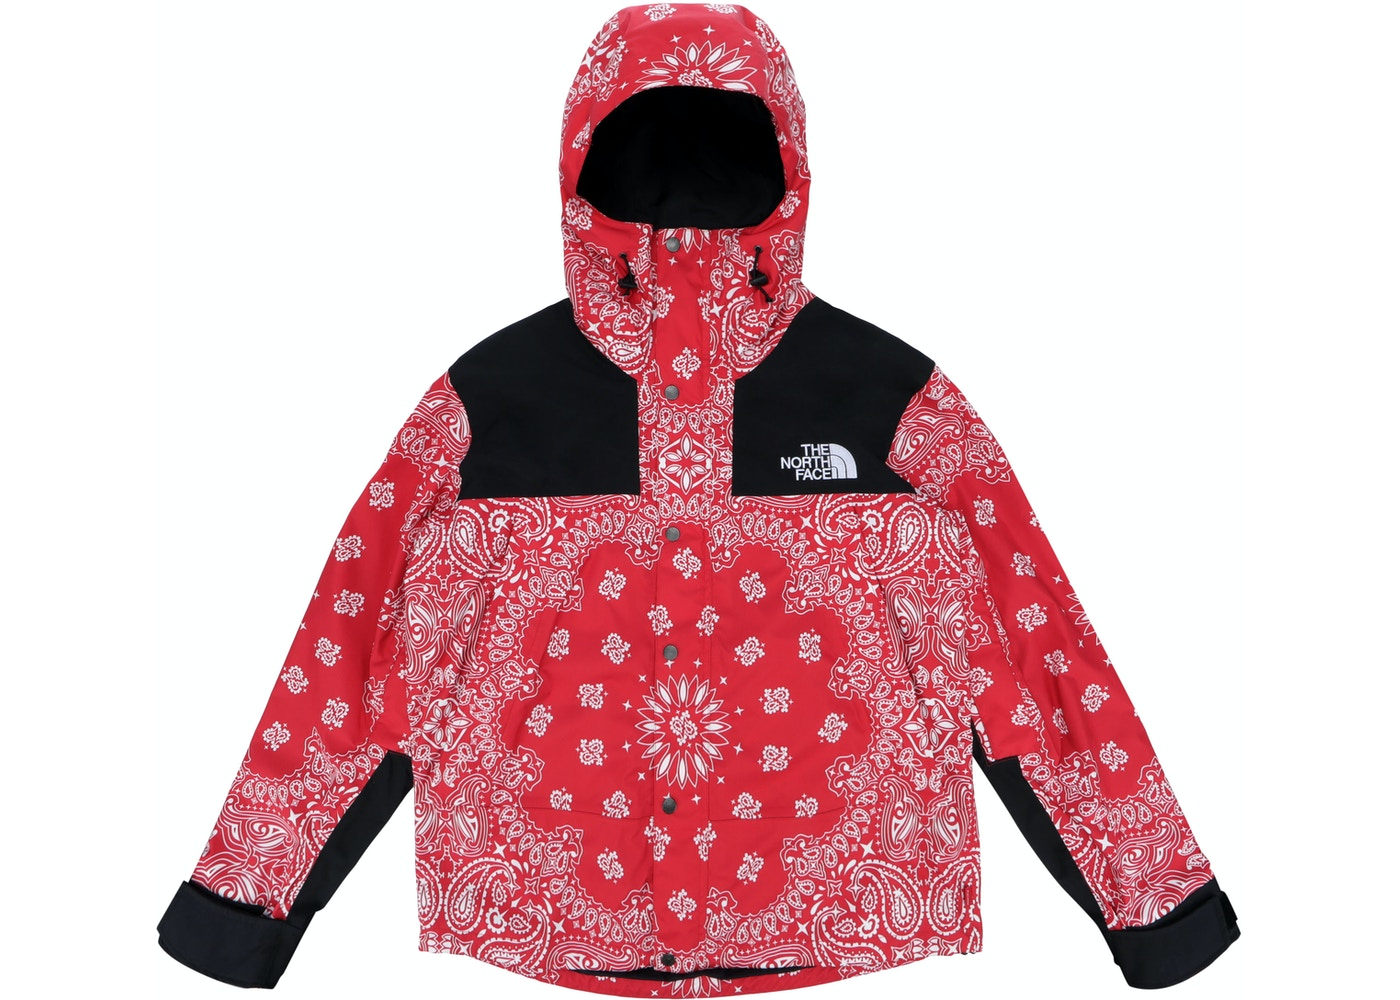 Or Ask Size M View All Bids Supreme The North Face Bandana Mountain Jacket Red